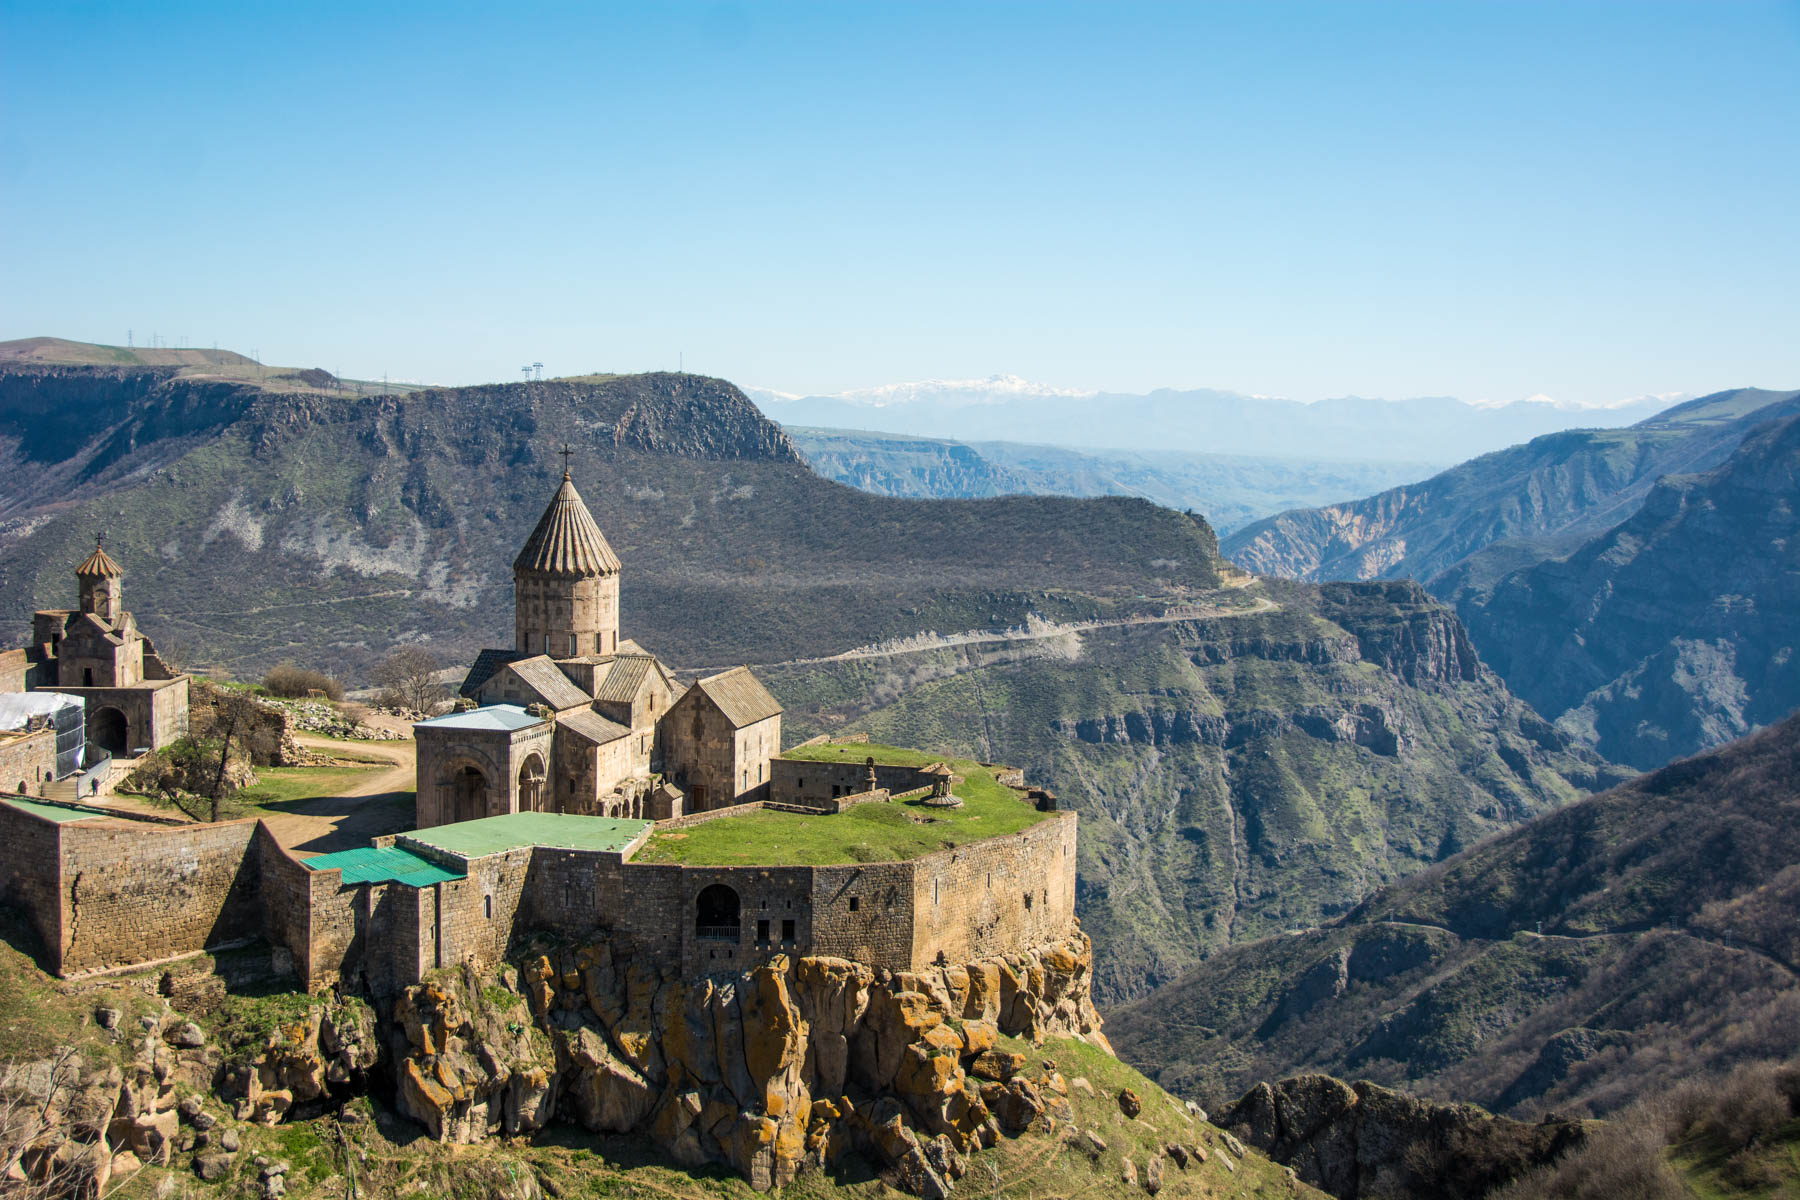 How to get to Tatev from Goris, Armenia - Tatev monastery from above, a great success! Good thing we figured out how to get Tatev from Goris, Armenia